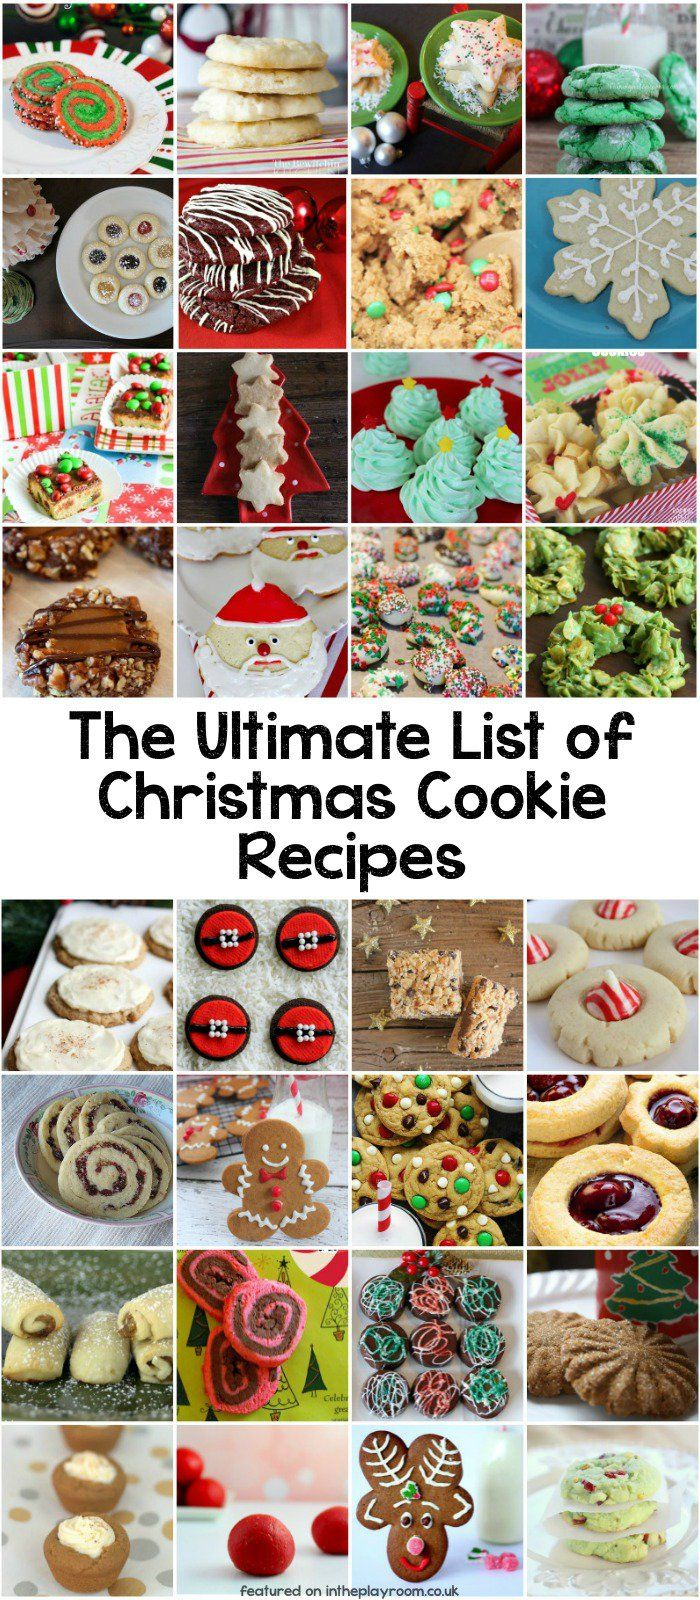 The Ultimate Collection of 85 Christmas Cookie Recipes